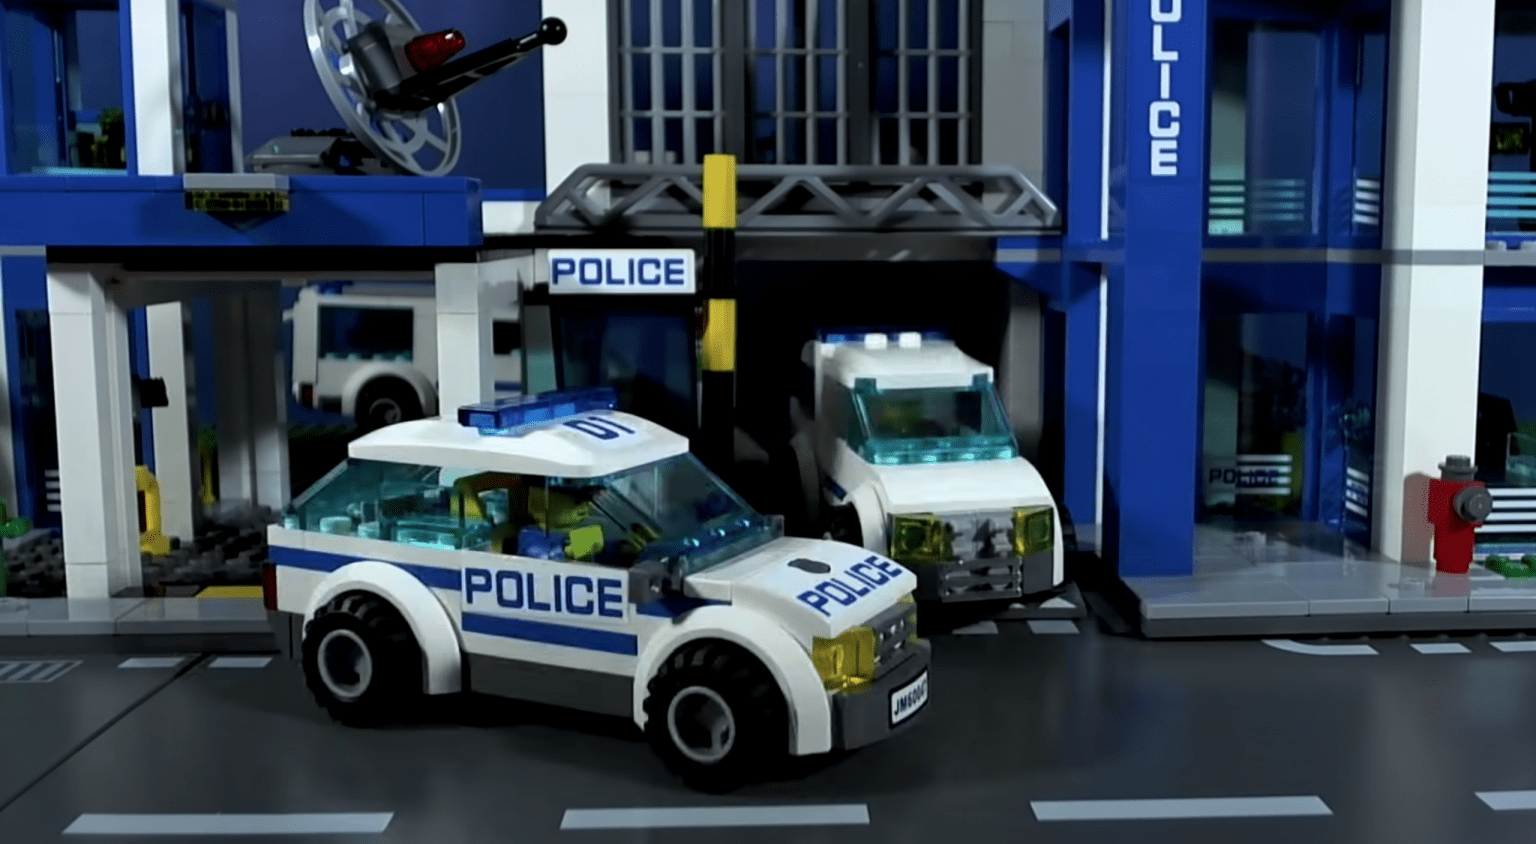 Lego gets slammed after marketing partner tells retailers to pull police-themed products from advertising